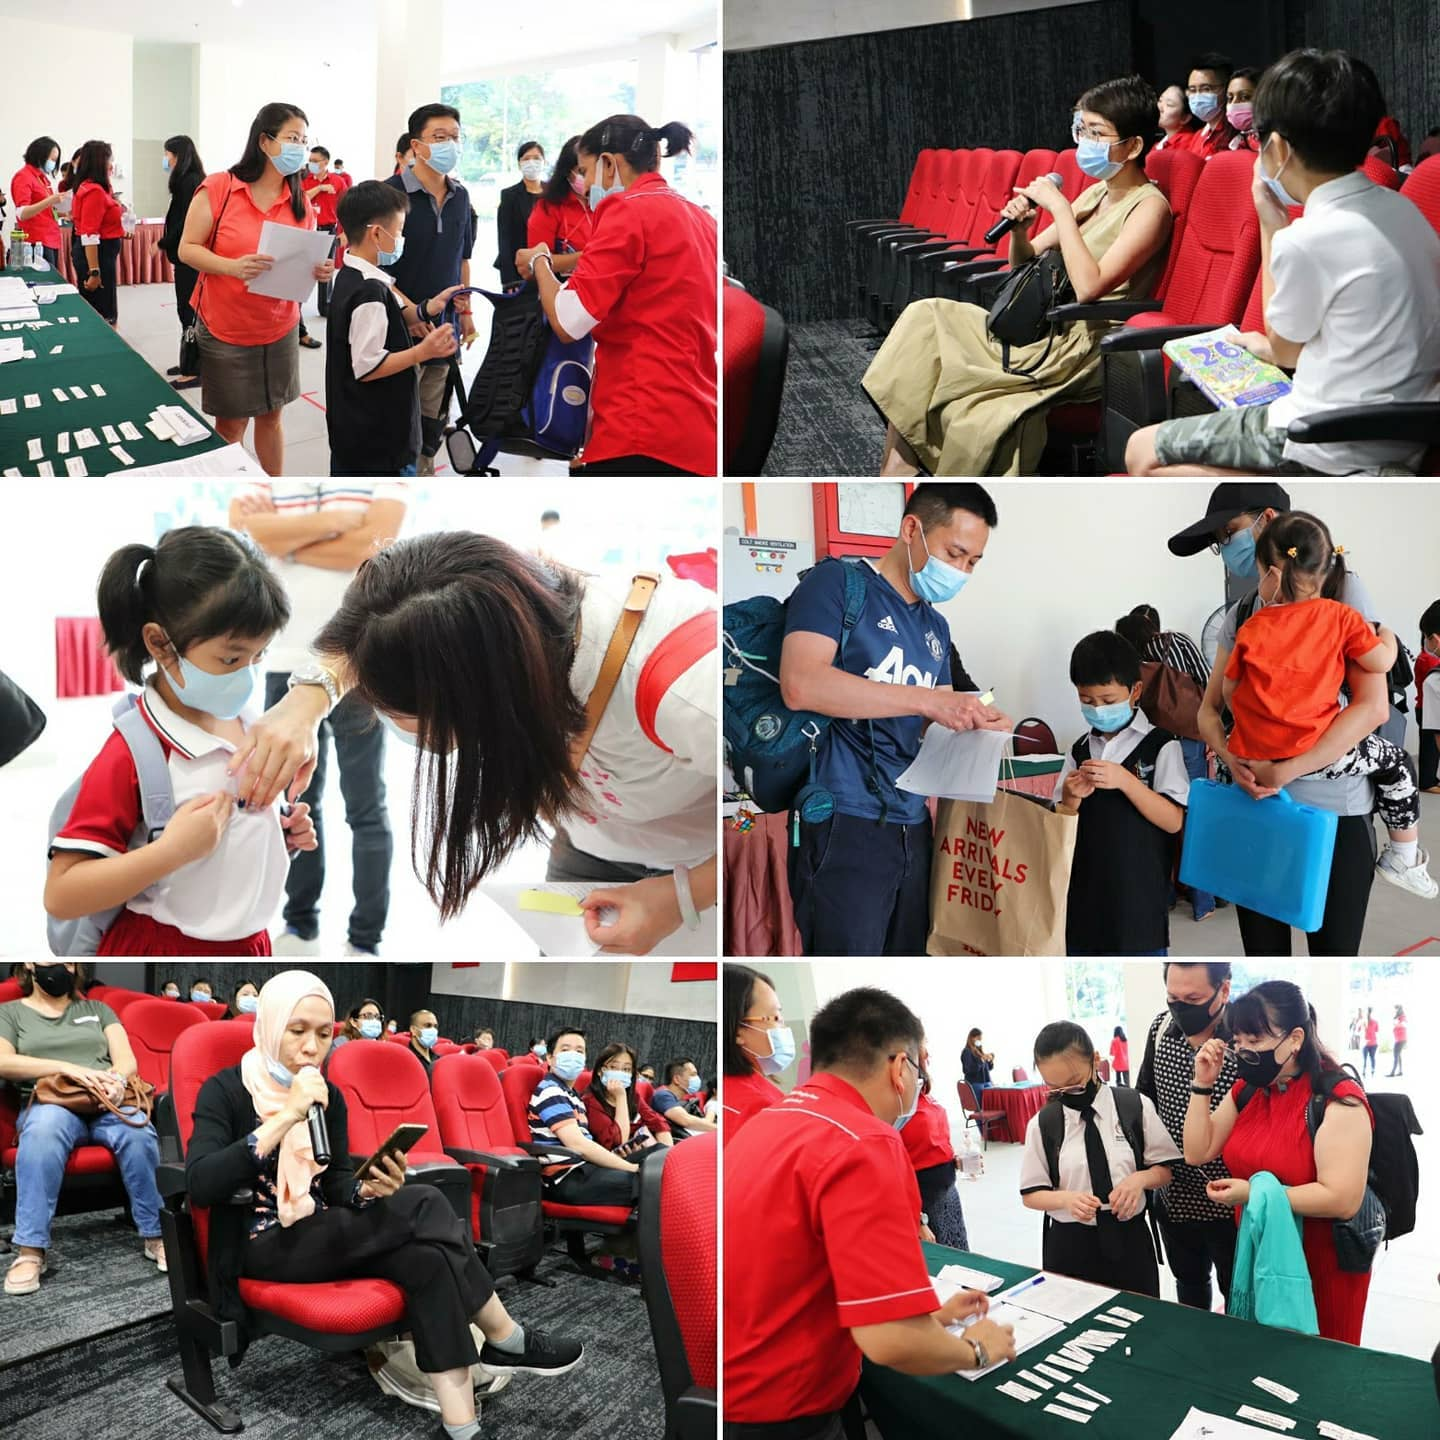 International School KL students interacting with their parents on orientation day